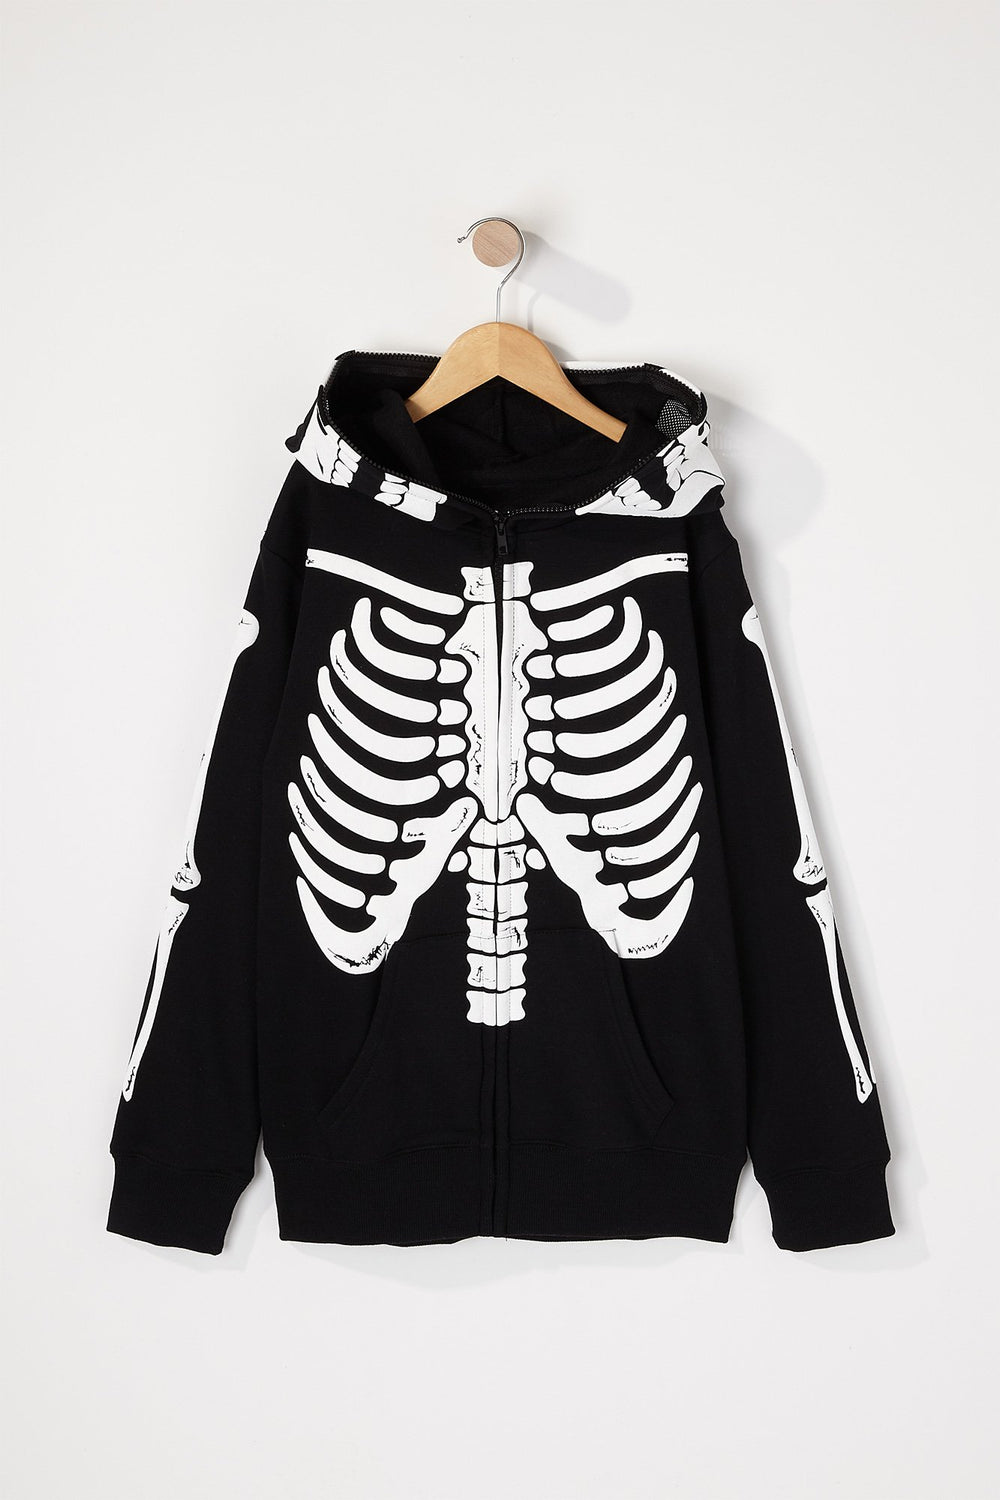 West49 Boys Skeleton Peeper Hoodie Black